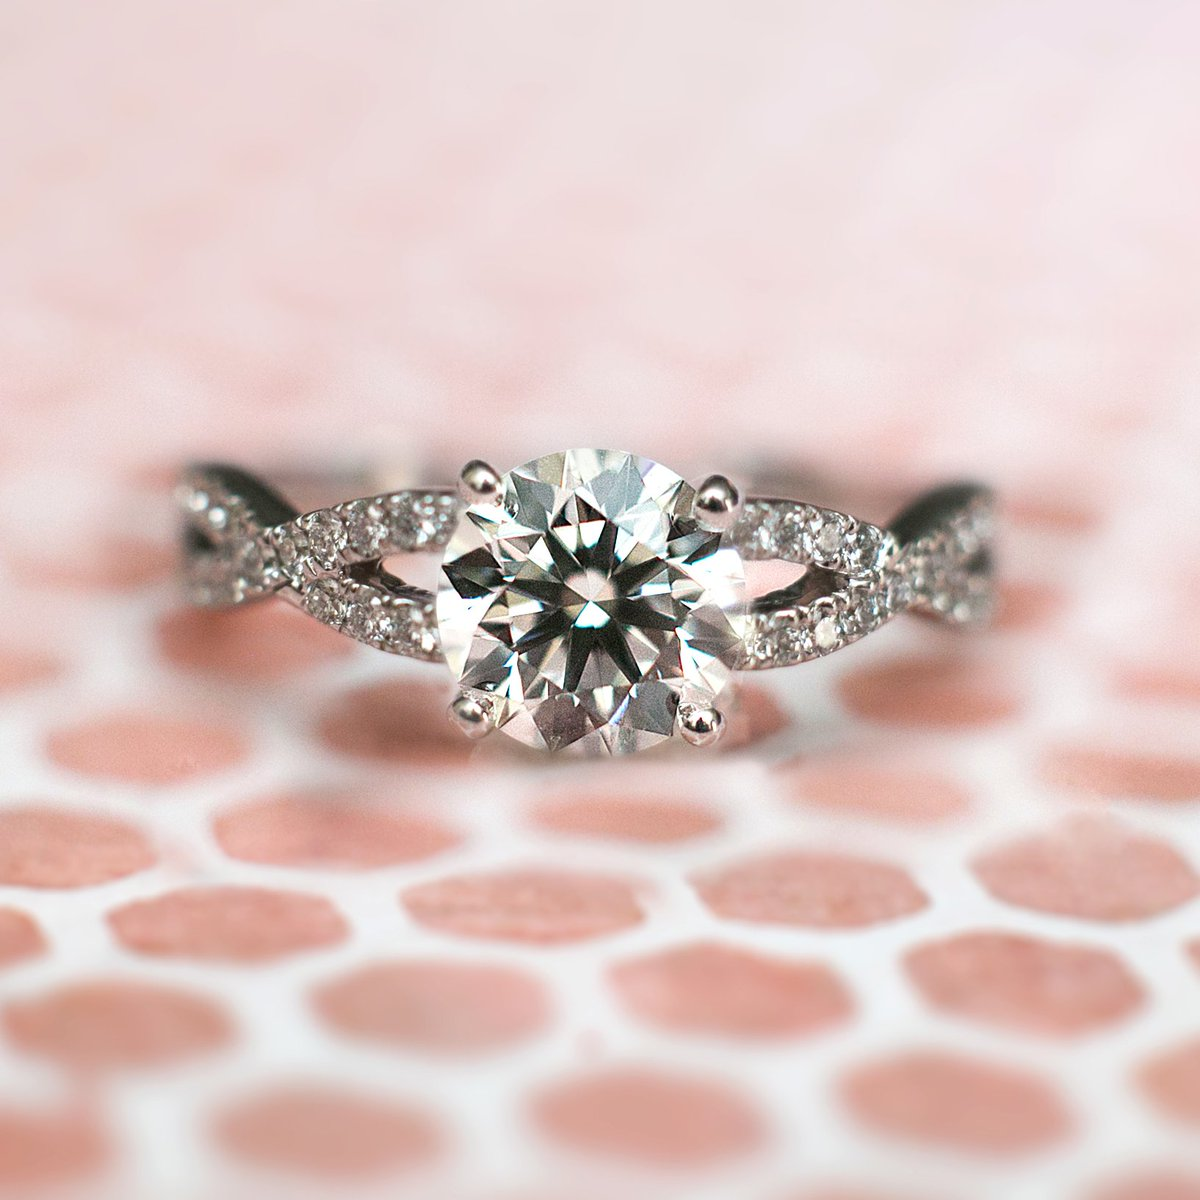 She is sure to say YES to these diamond rings https://t.co/uP2J6u2FpT https://t.co/bwPHYjMXWq